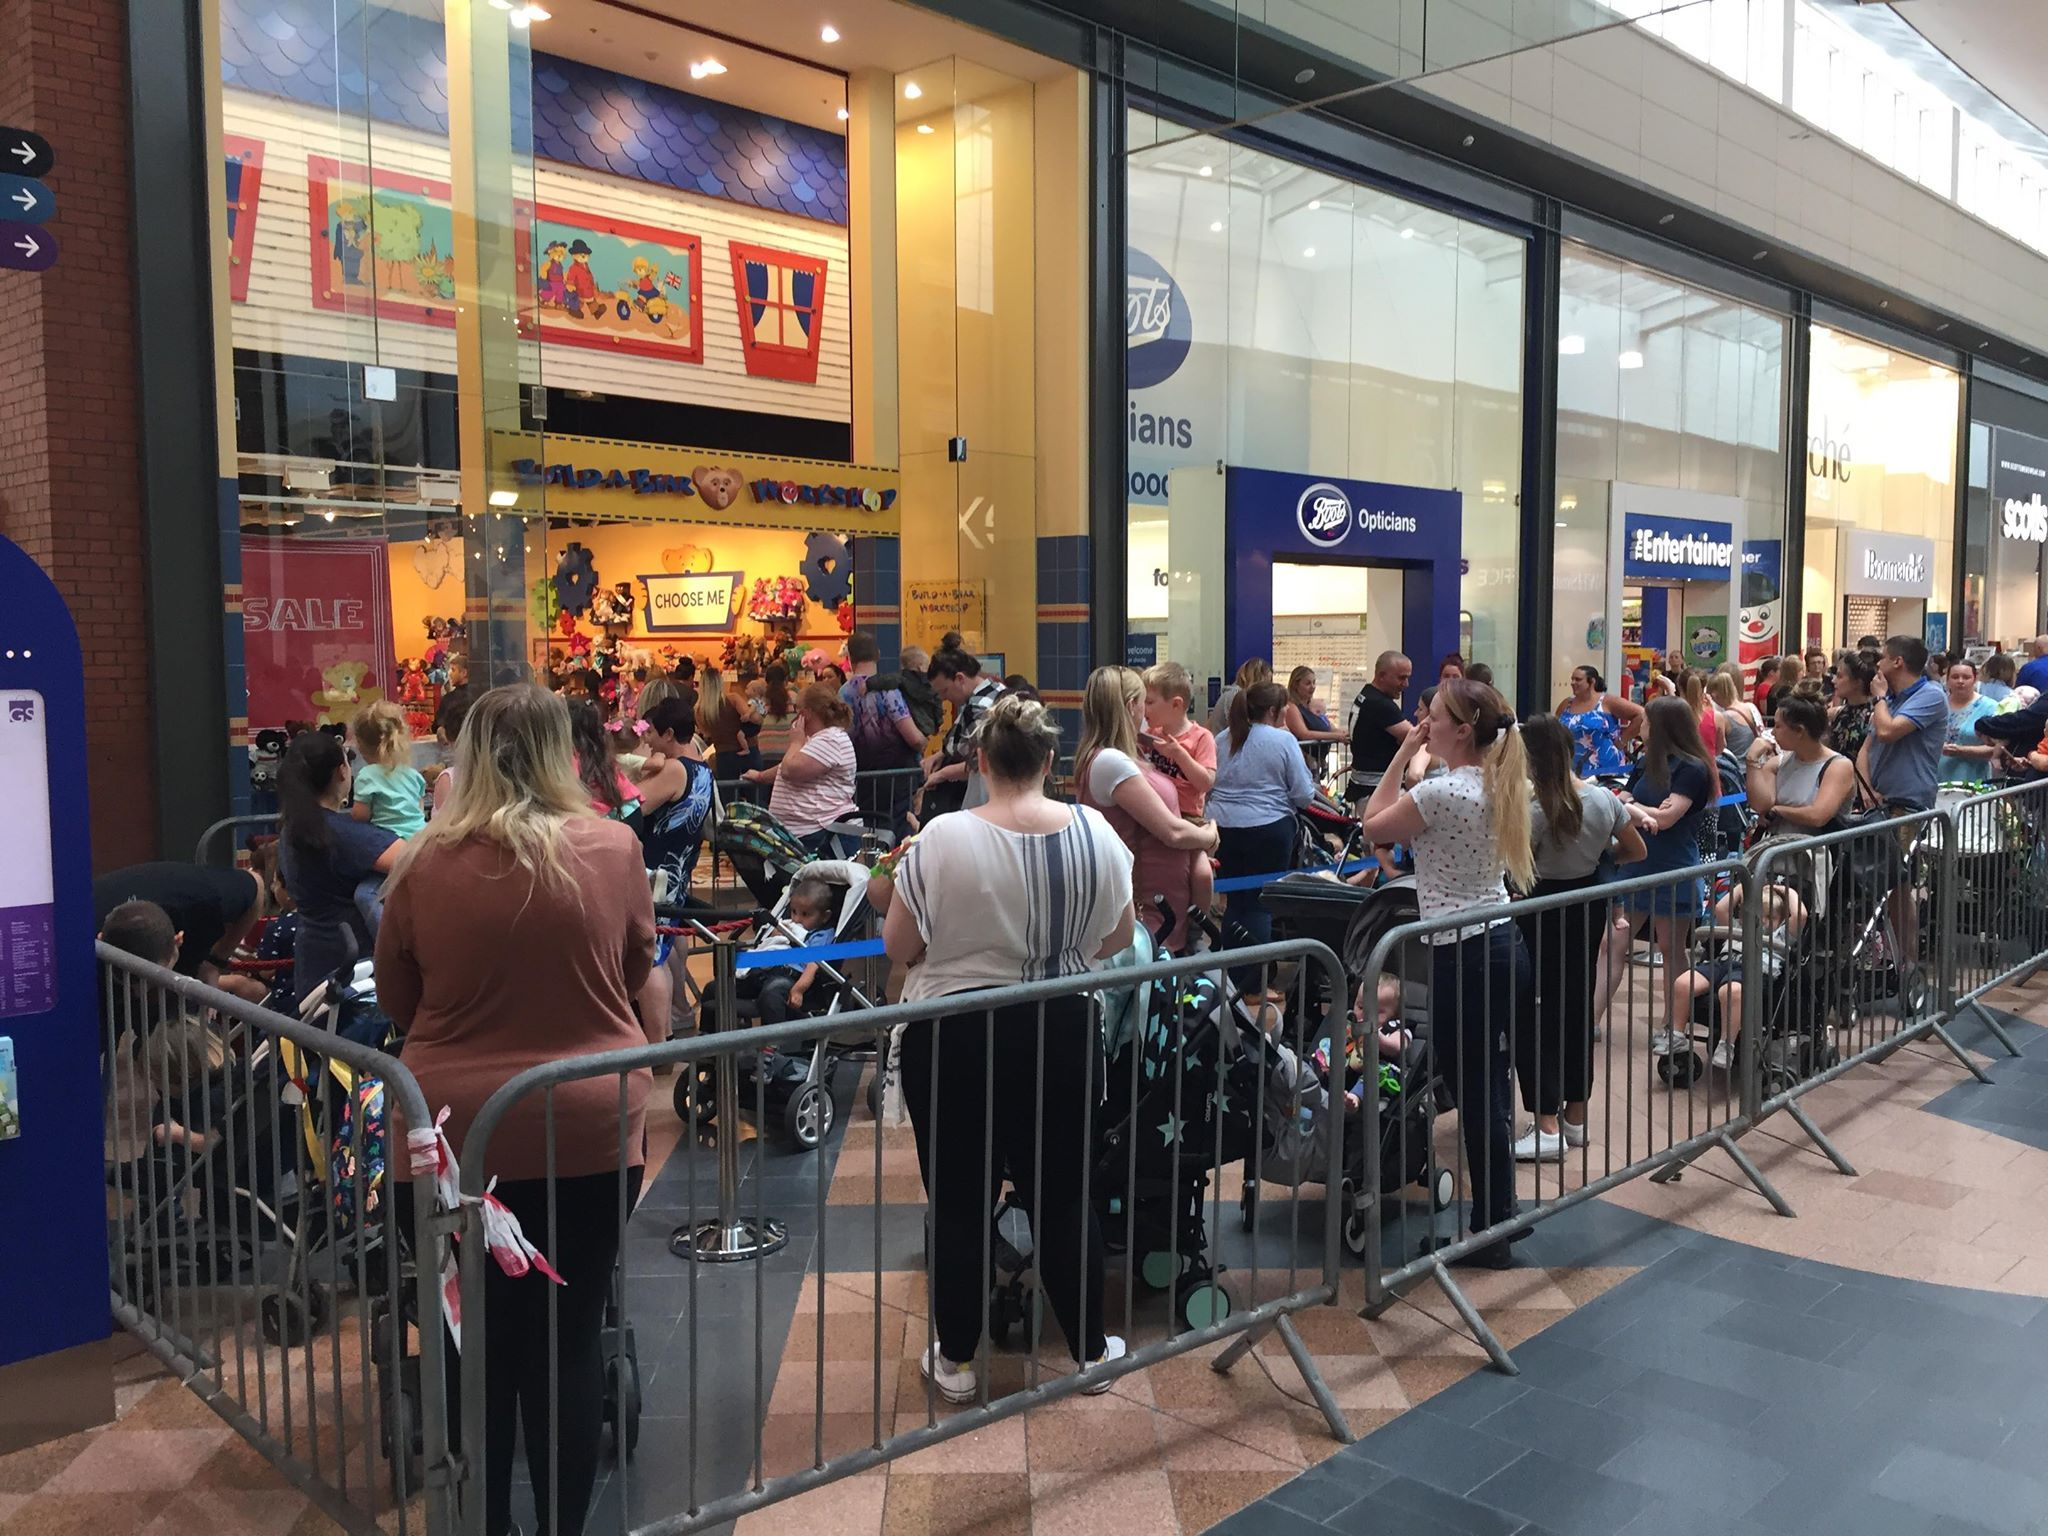 Lines for Build-A-Bear promotion out the door